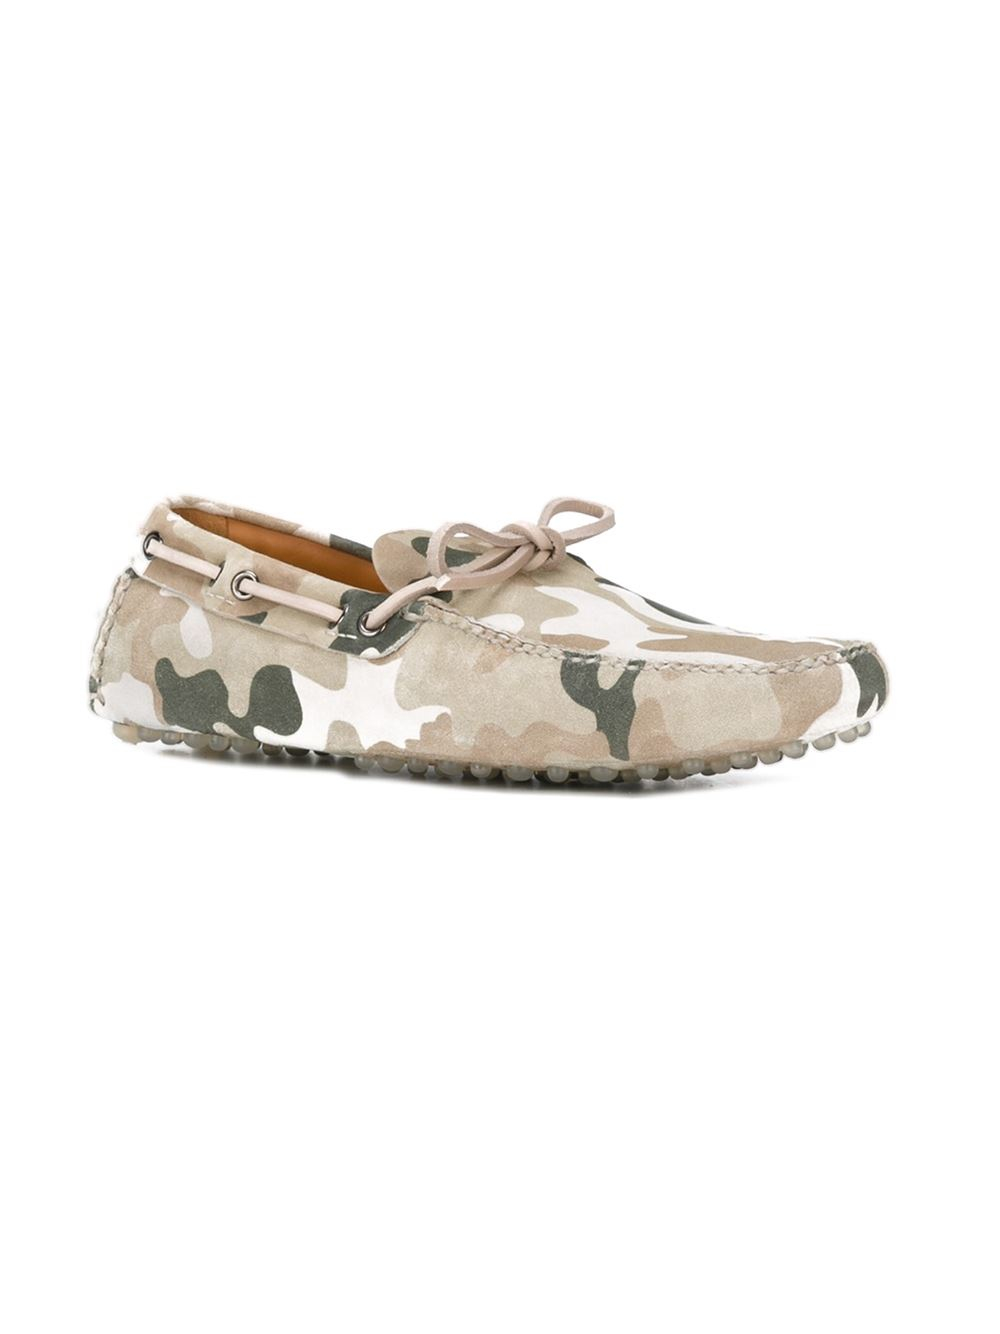 Car shoe Camouflage Driving Shoes for Men